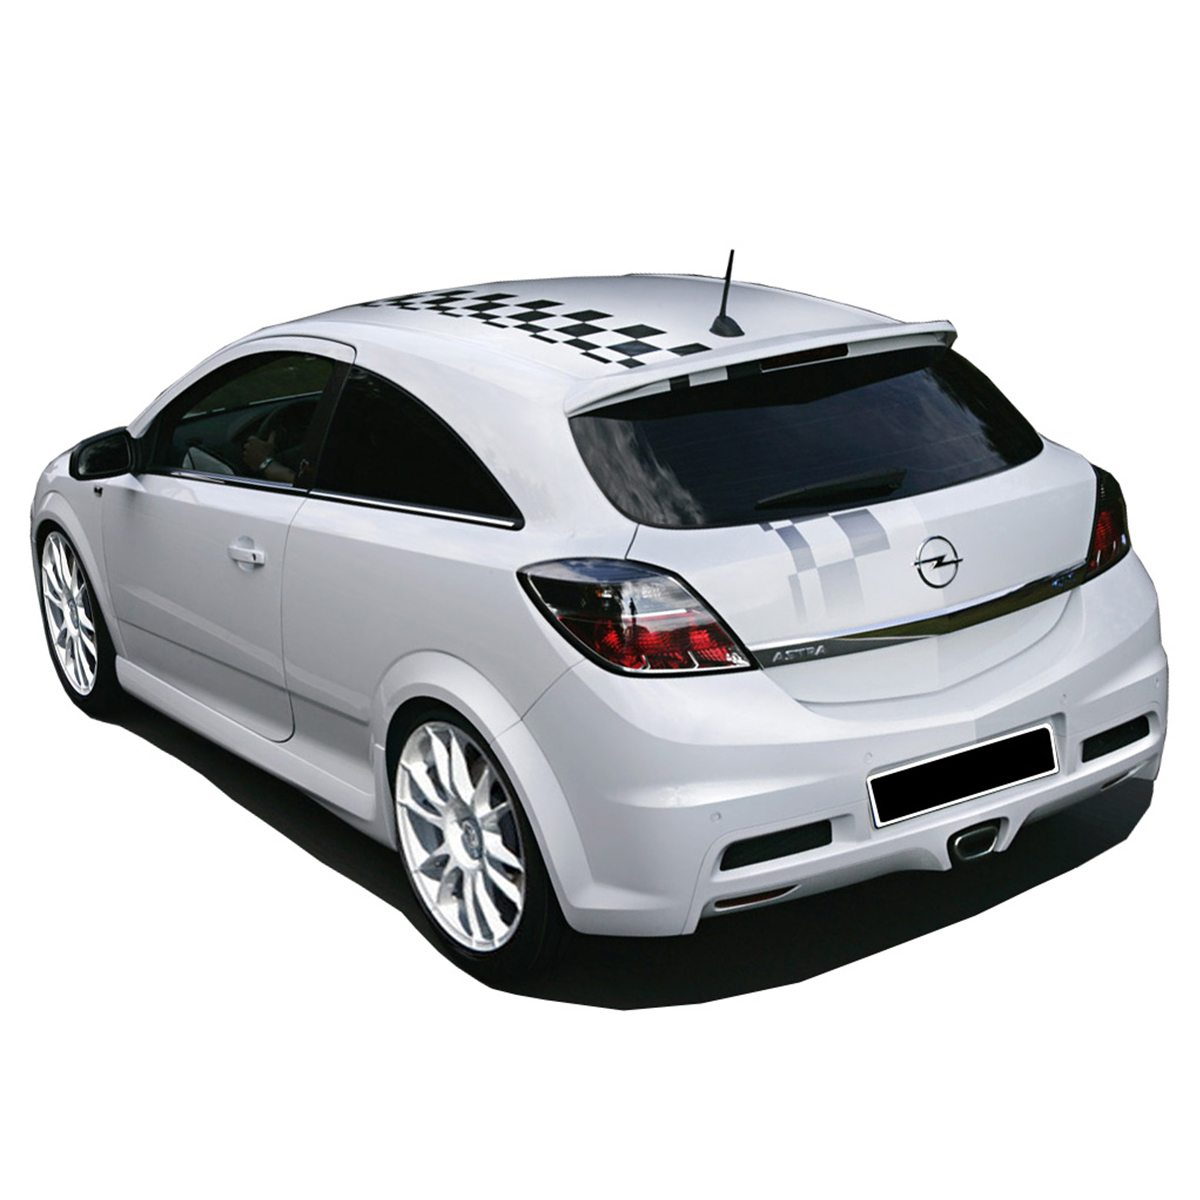 Opel-Astra-H-OPC-Tras-PCF008